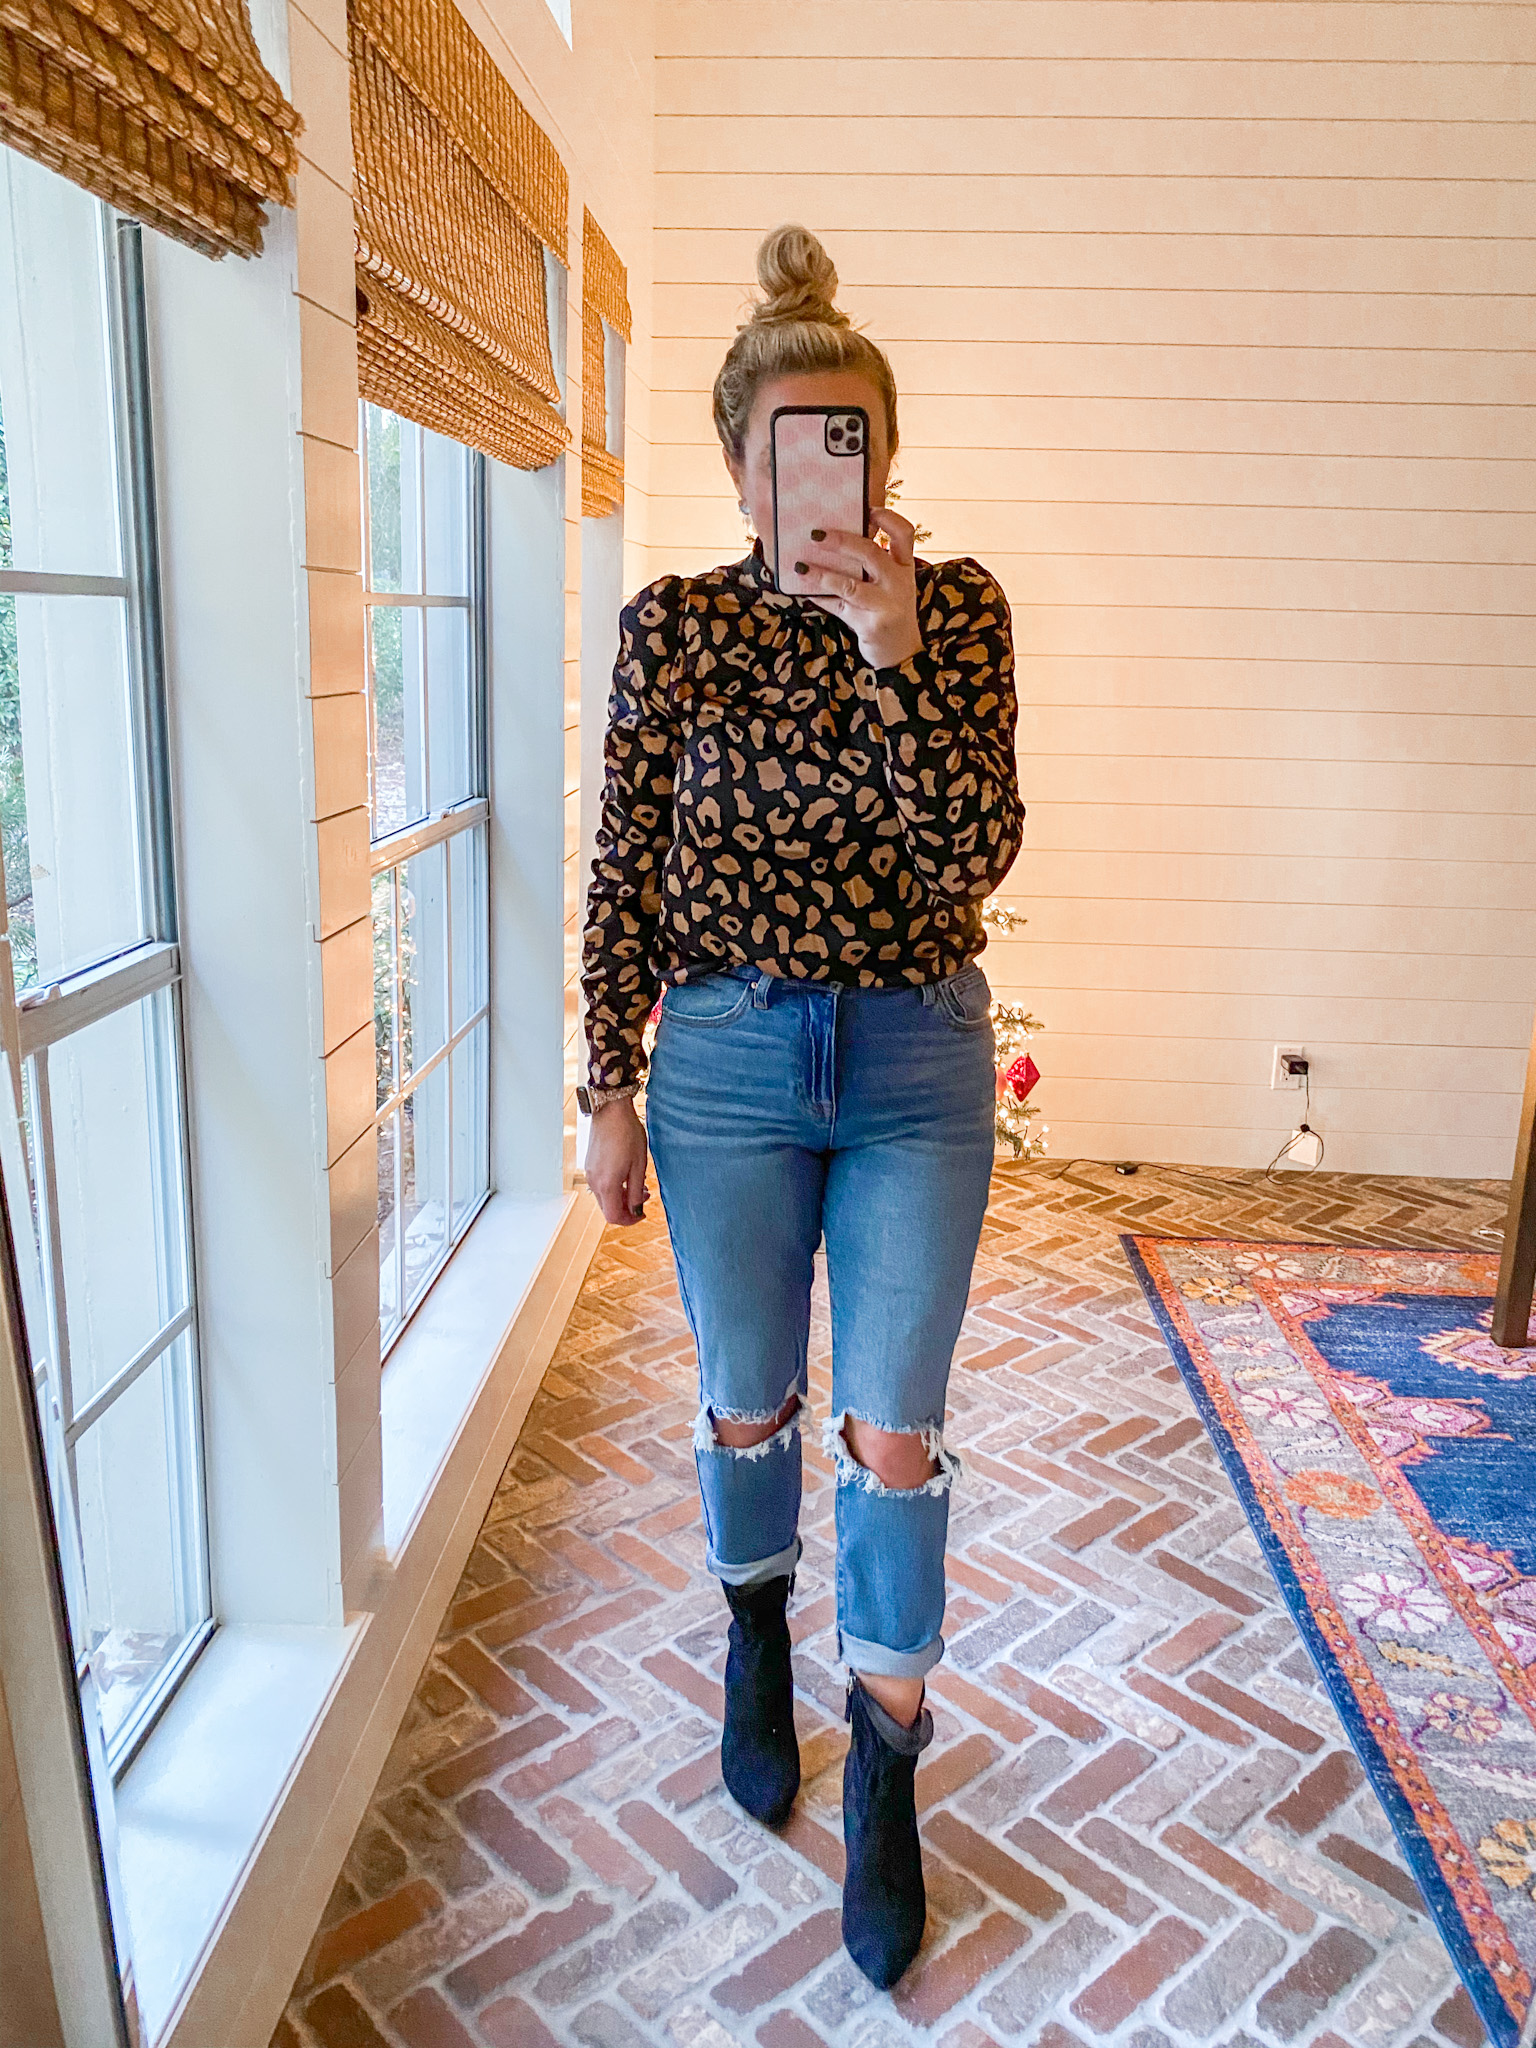 Walmart Womens Clothes by popular Houston fashion blog, Fancy Ashley: image of a woman wearing a Walmart Scoop Women's Mock Neck Top with Ruched Sleeves, Walmart No Boundaries Juniors' Mom Jeans, and Walmart Scoop Women's Blair Scrunch Stiletto Heeled Booties.